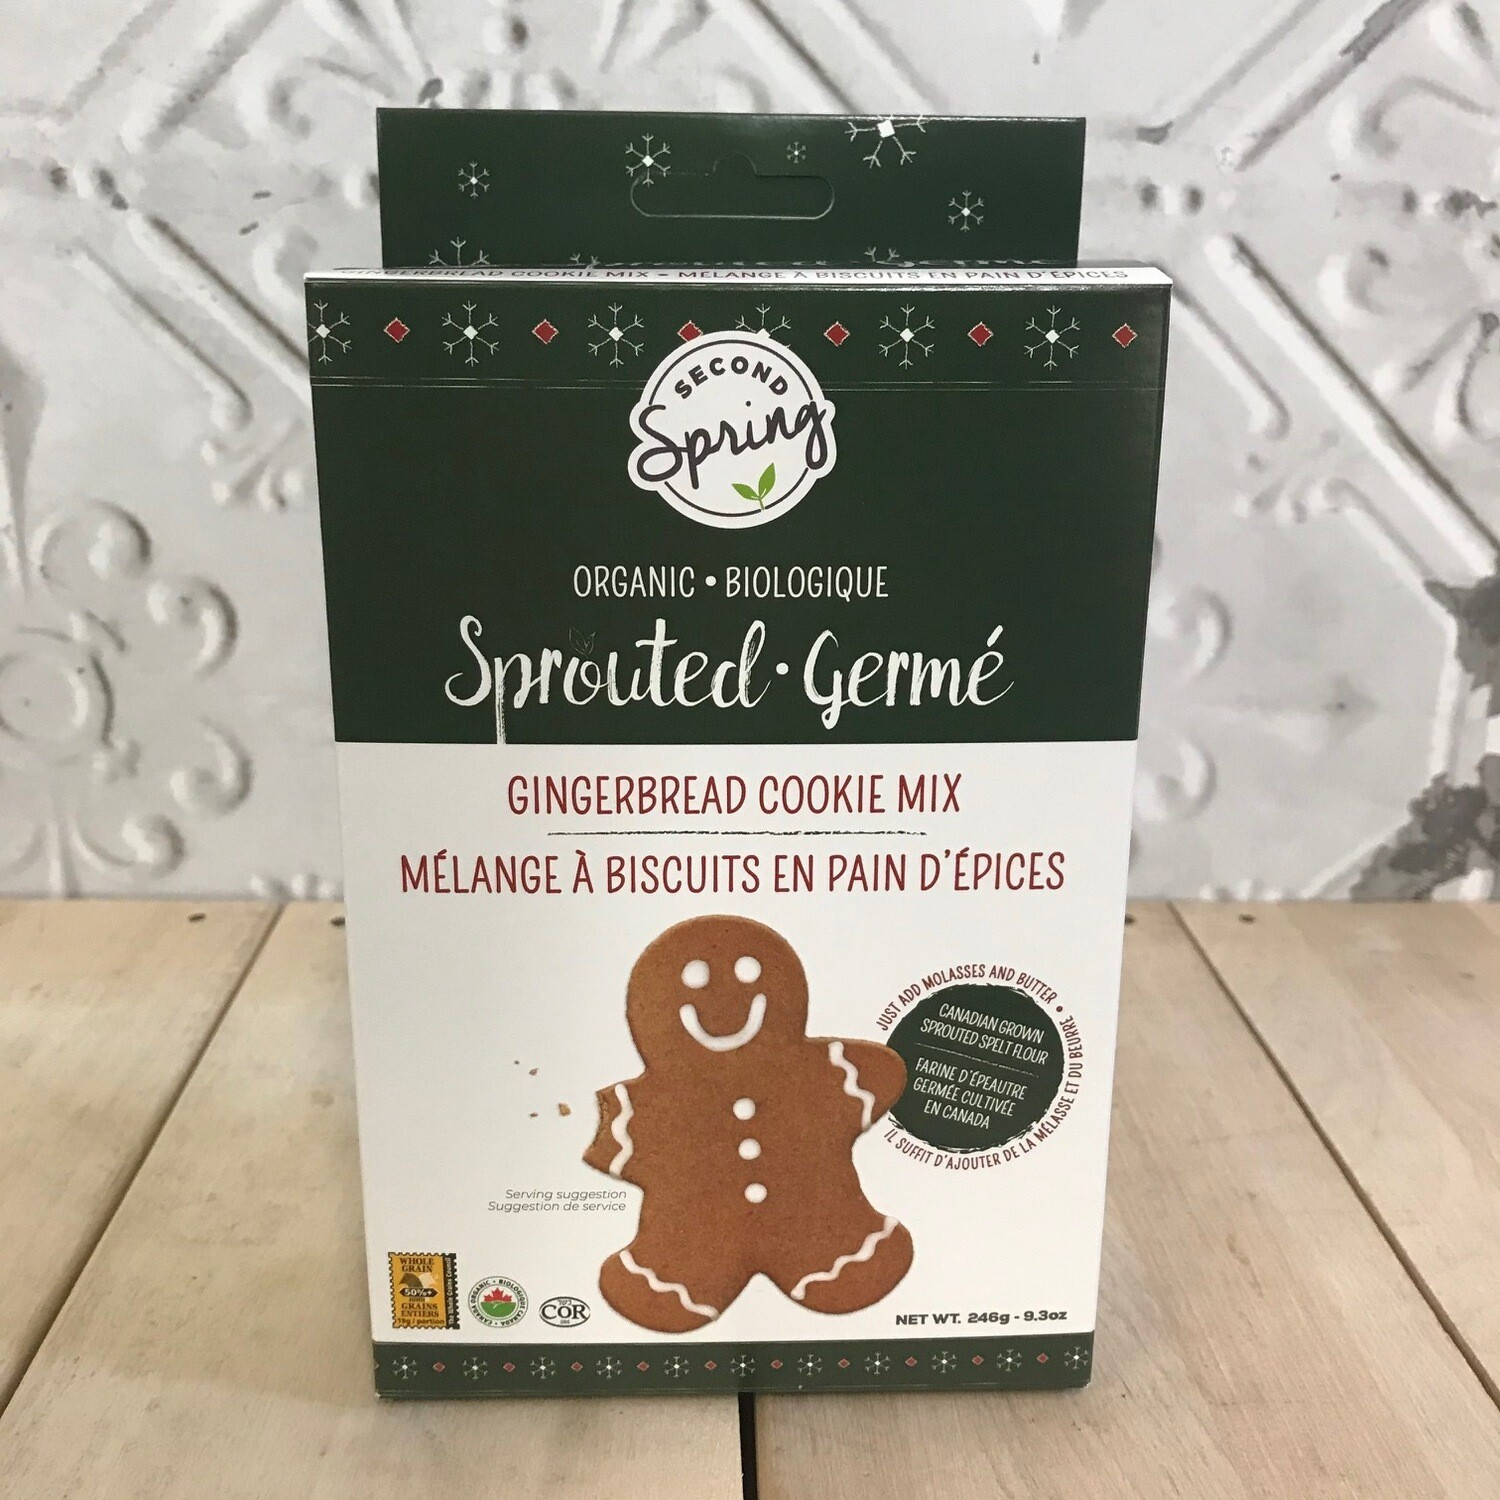 SECOND SPRING Gingerbread Mix